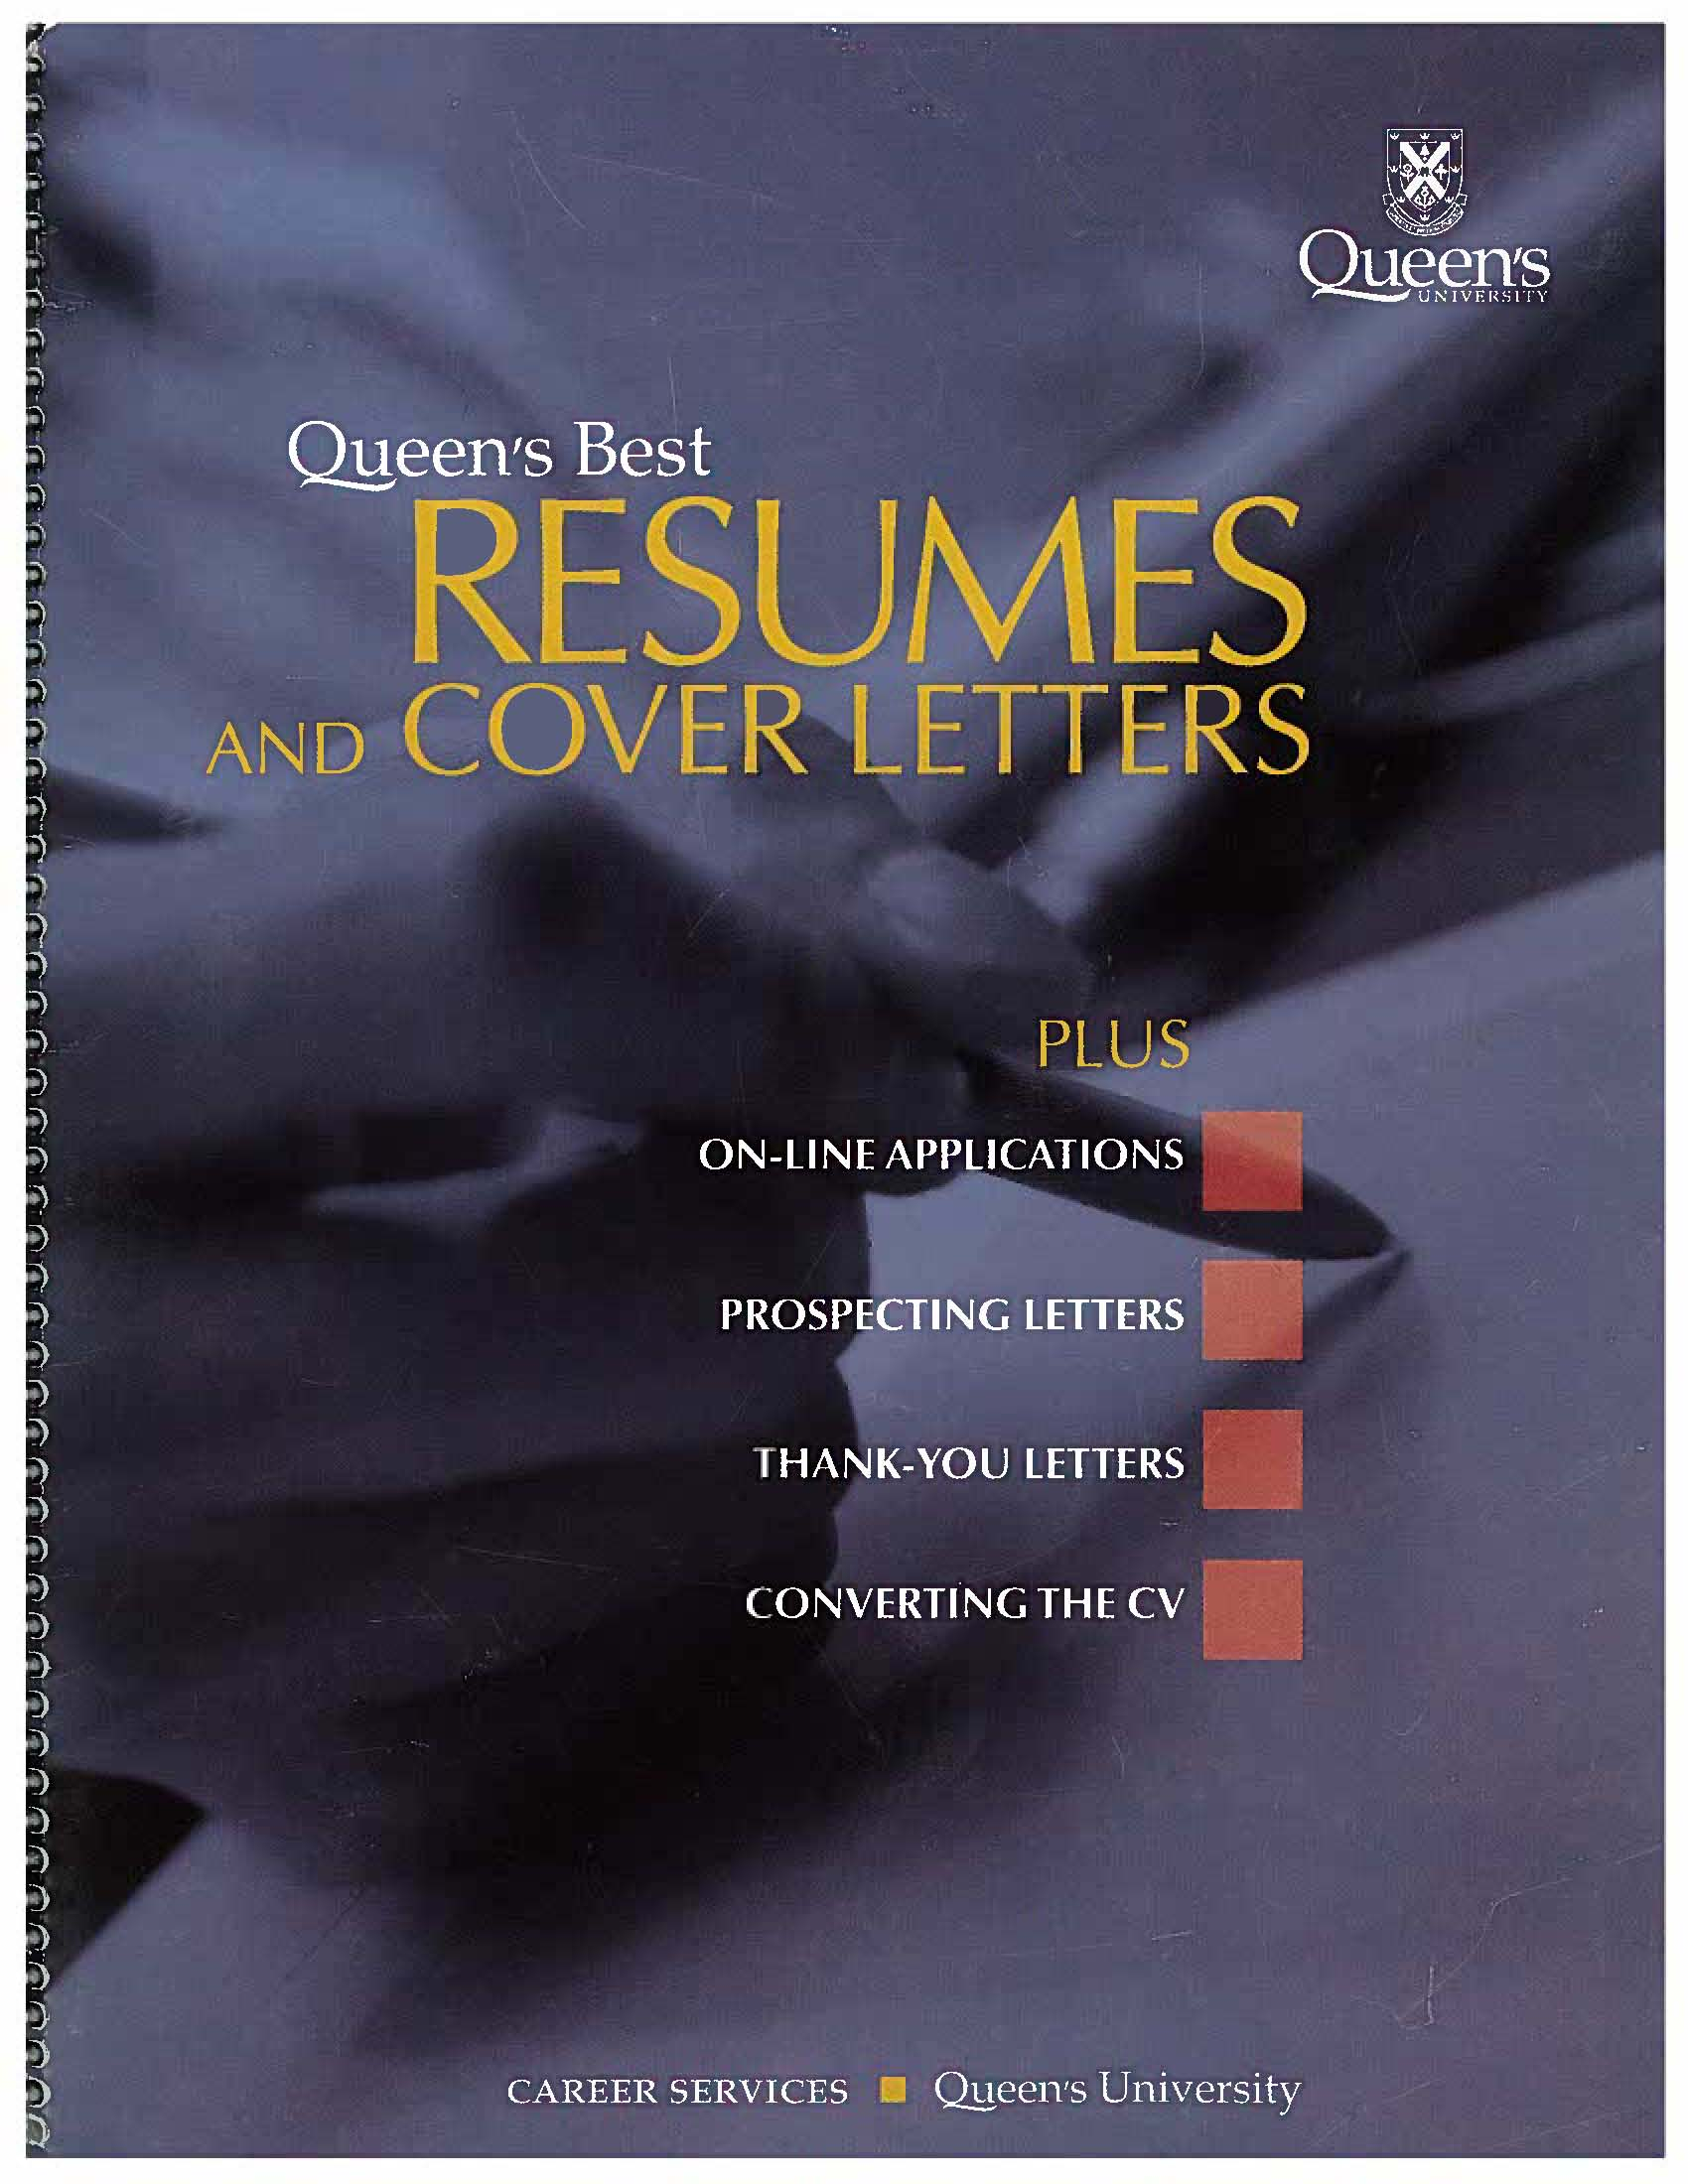 Queen's Best Resumes cover